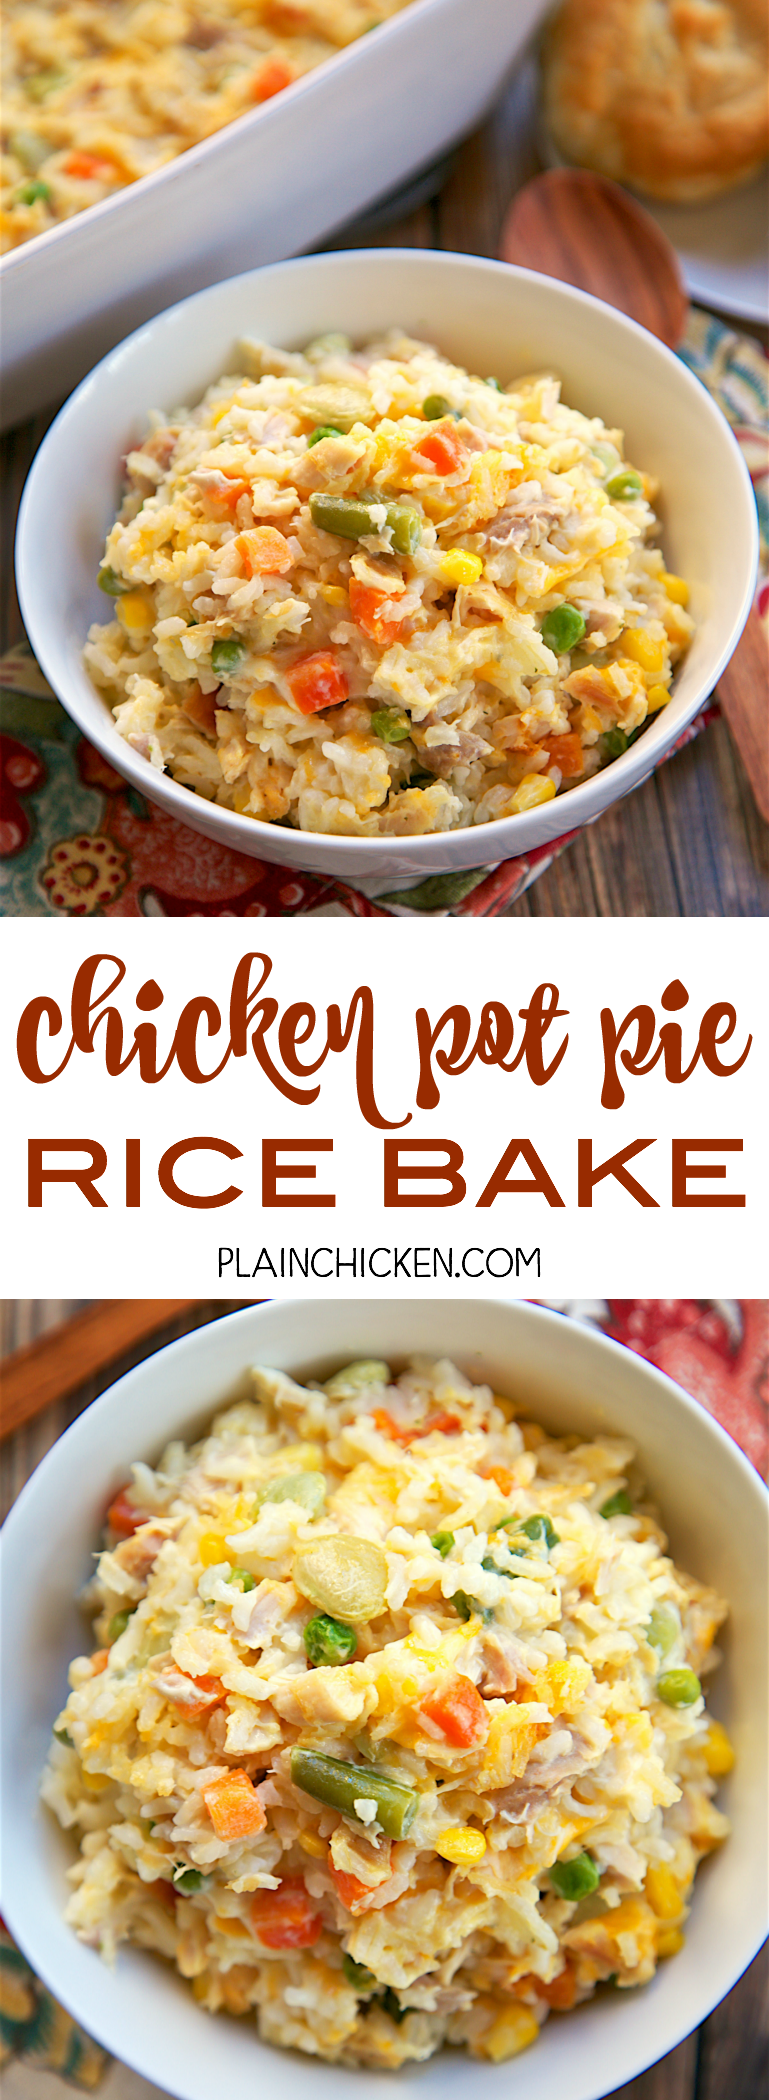 Chicken Pot Pie Rice Bake Easy Casserole Dishes Easy Casserole Casserole Dishes